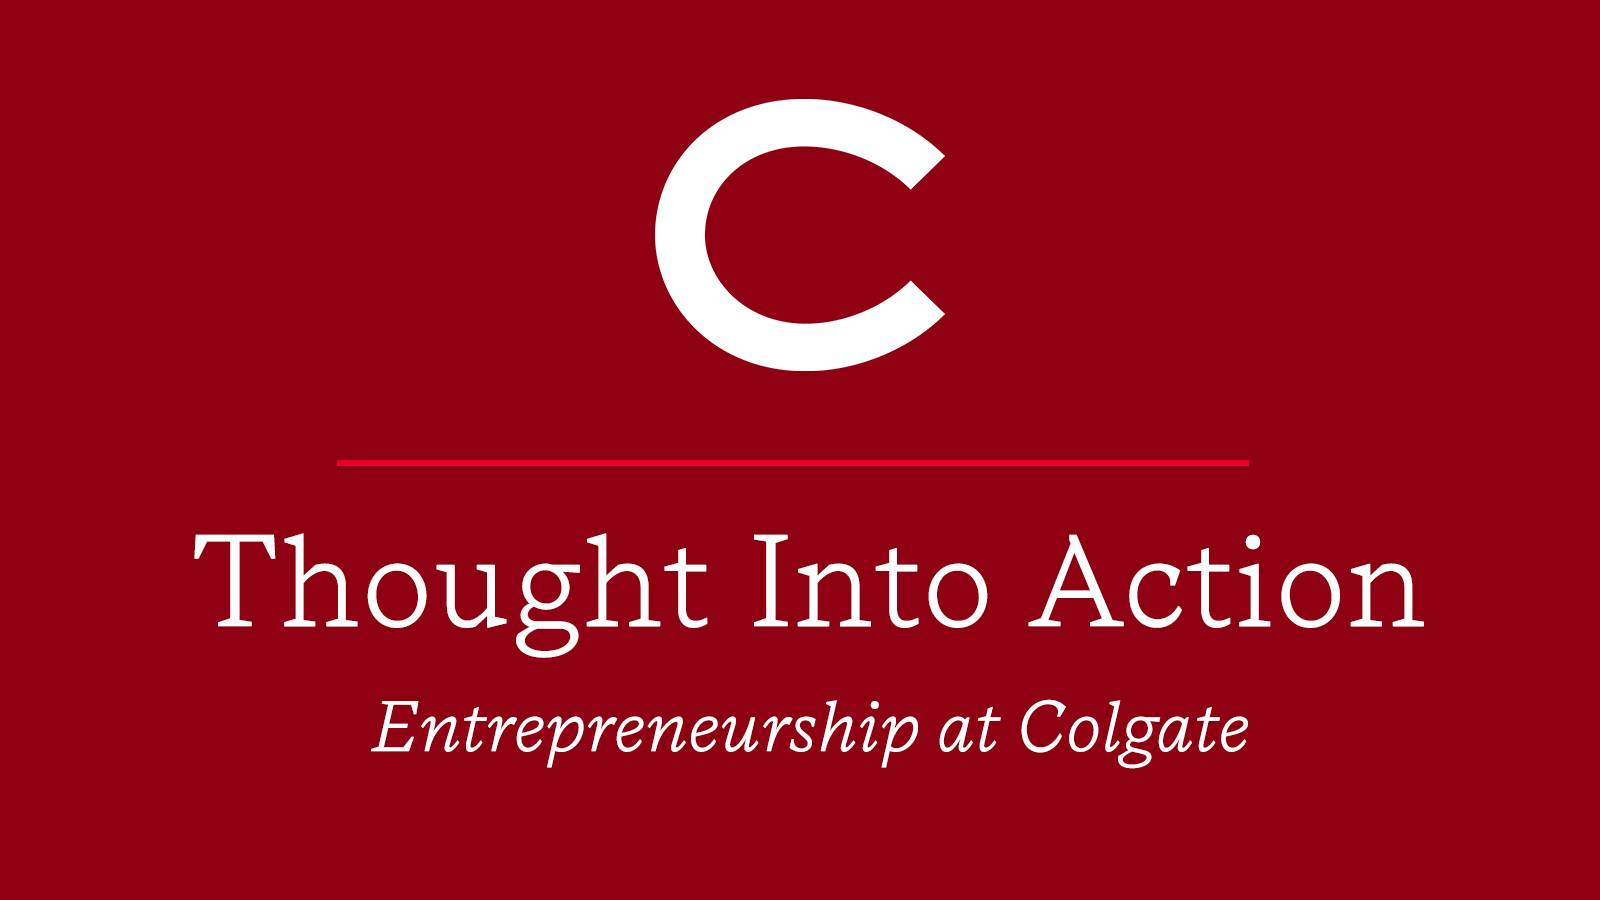 """Thought Into Action: Entrepreneurship at Colgate"" on a red background under the Colgate logo"